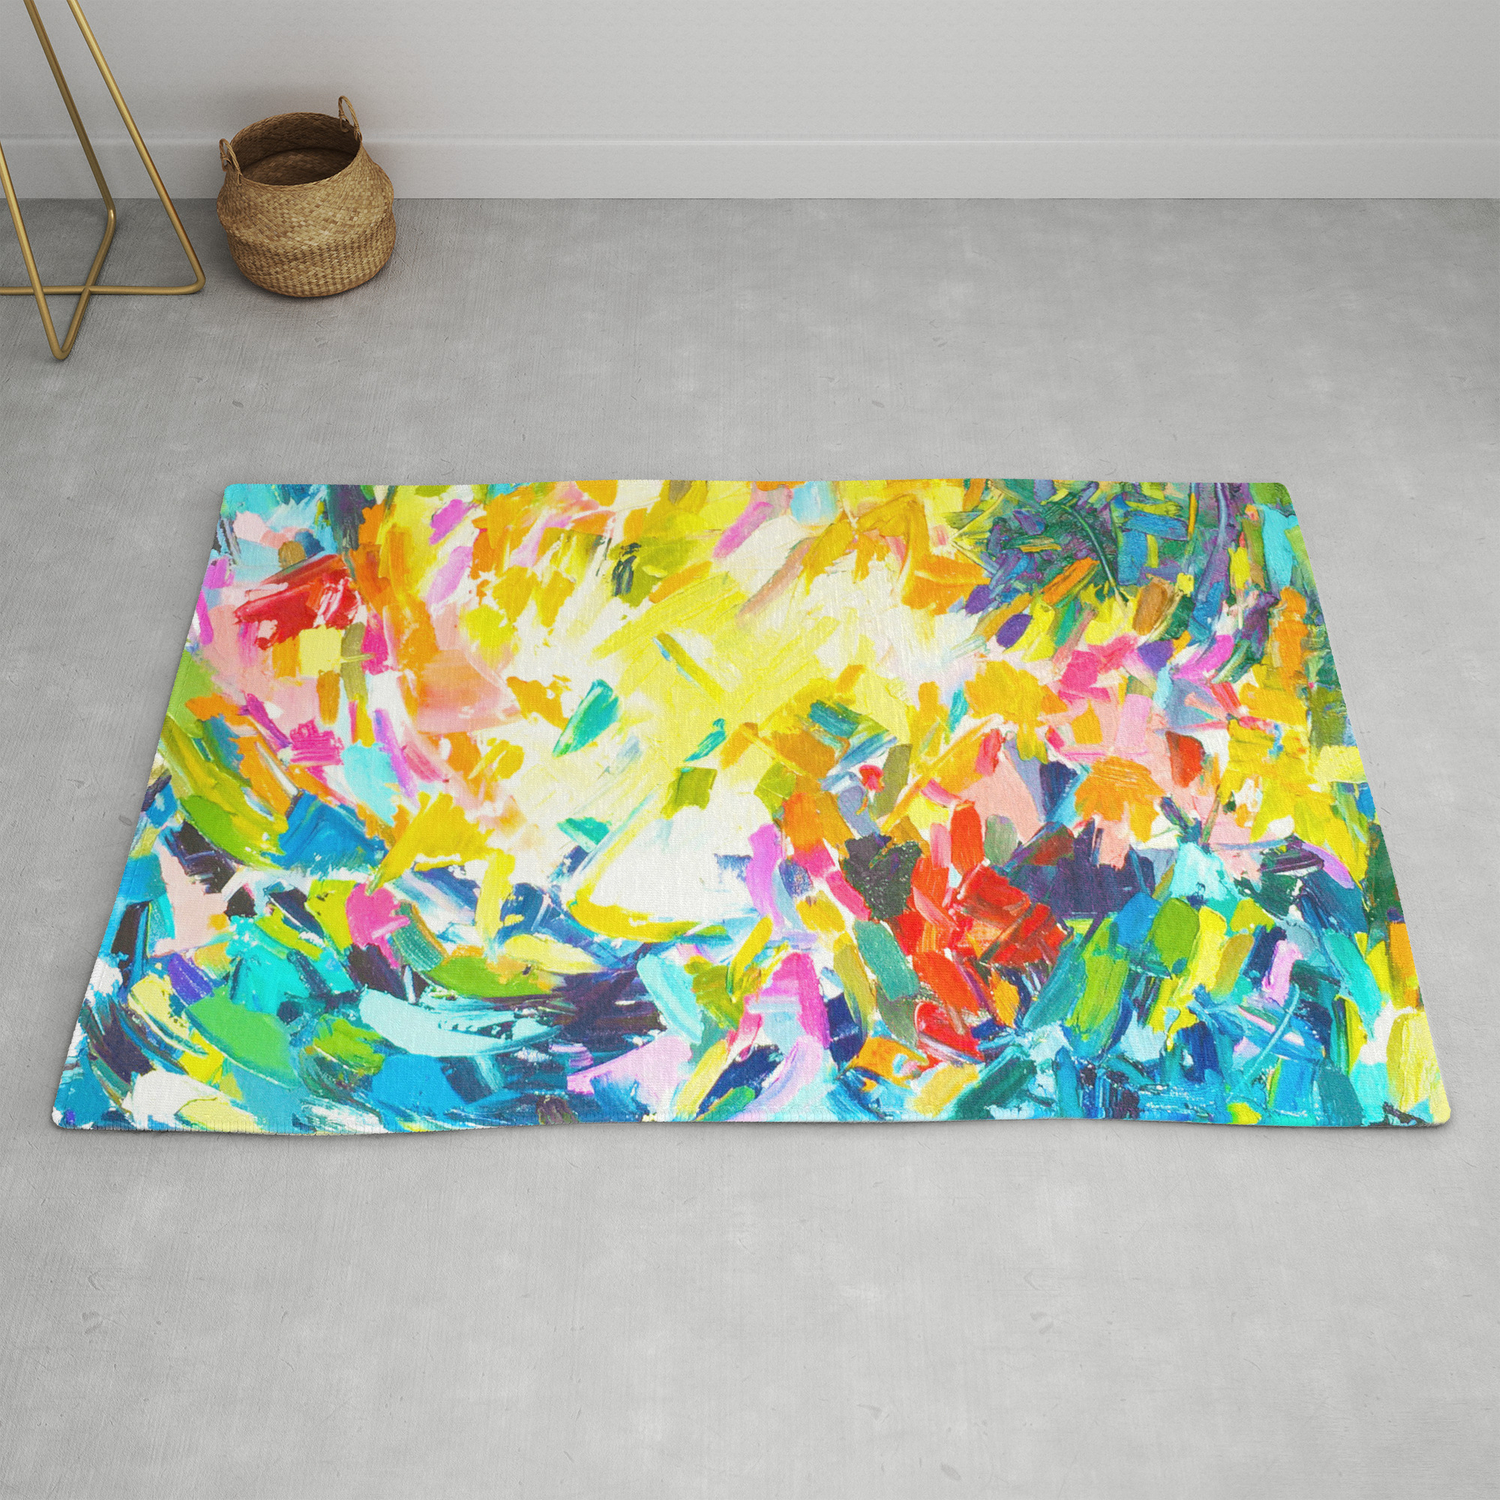 Colorful Contemporary Abstract Painting With Bright Colors And Fun Texture Rug By Melissapolomsky